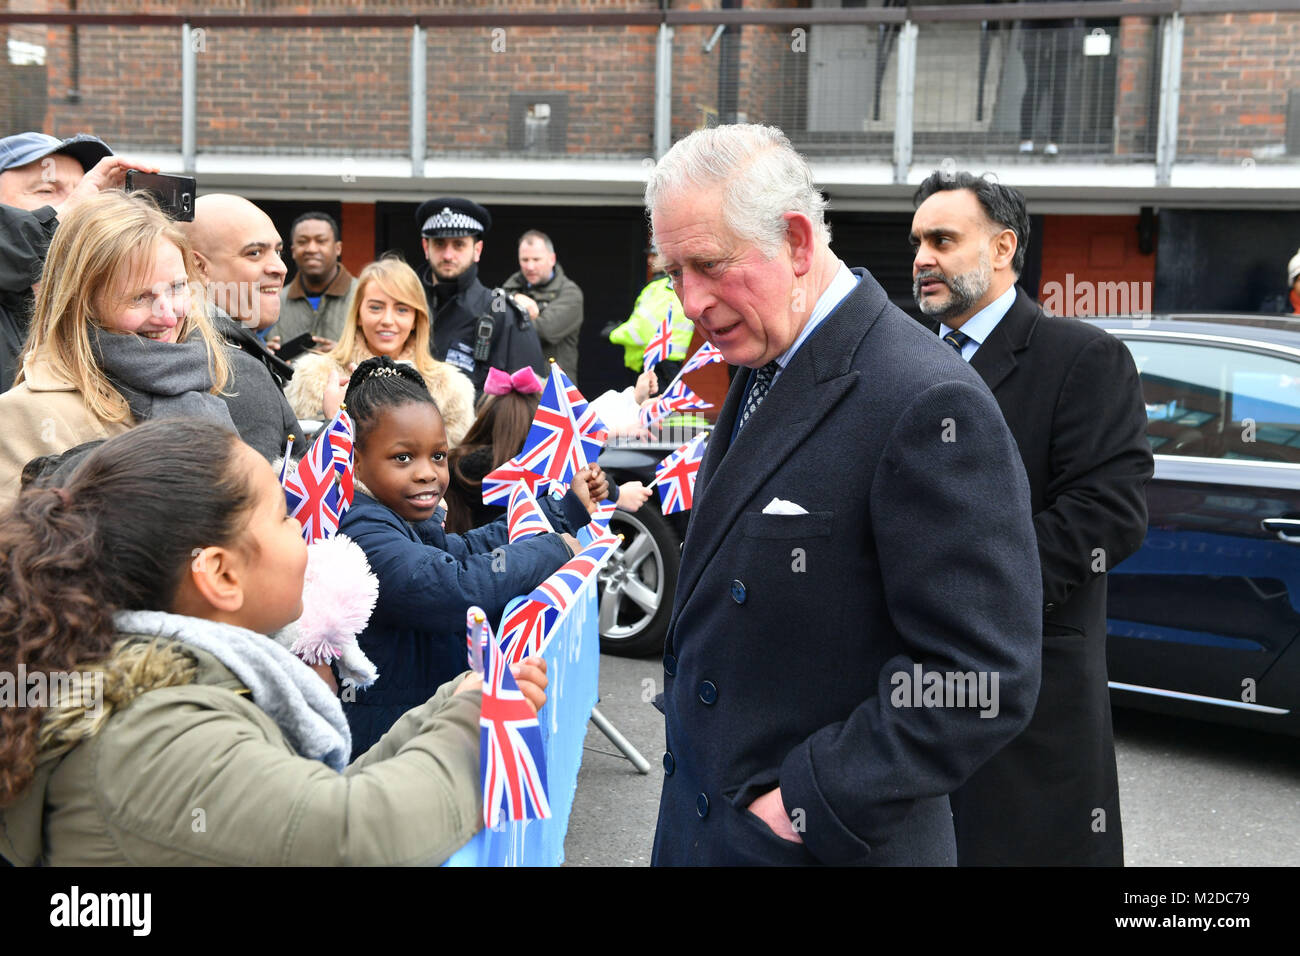 The Prince of Wales arrives for the official opening The National Grid's London Power Tunnels project in north - Stock Image